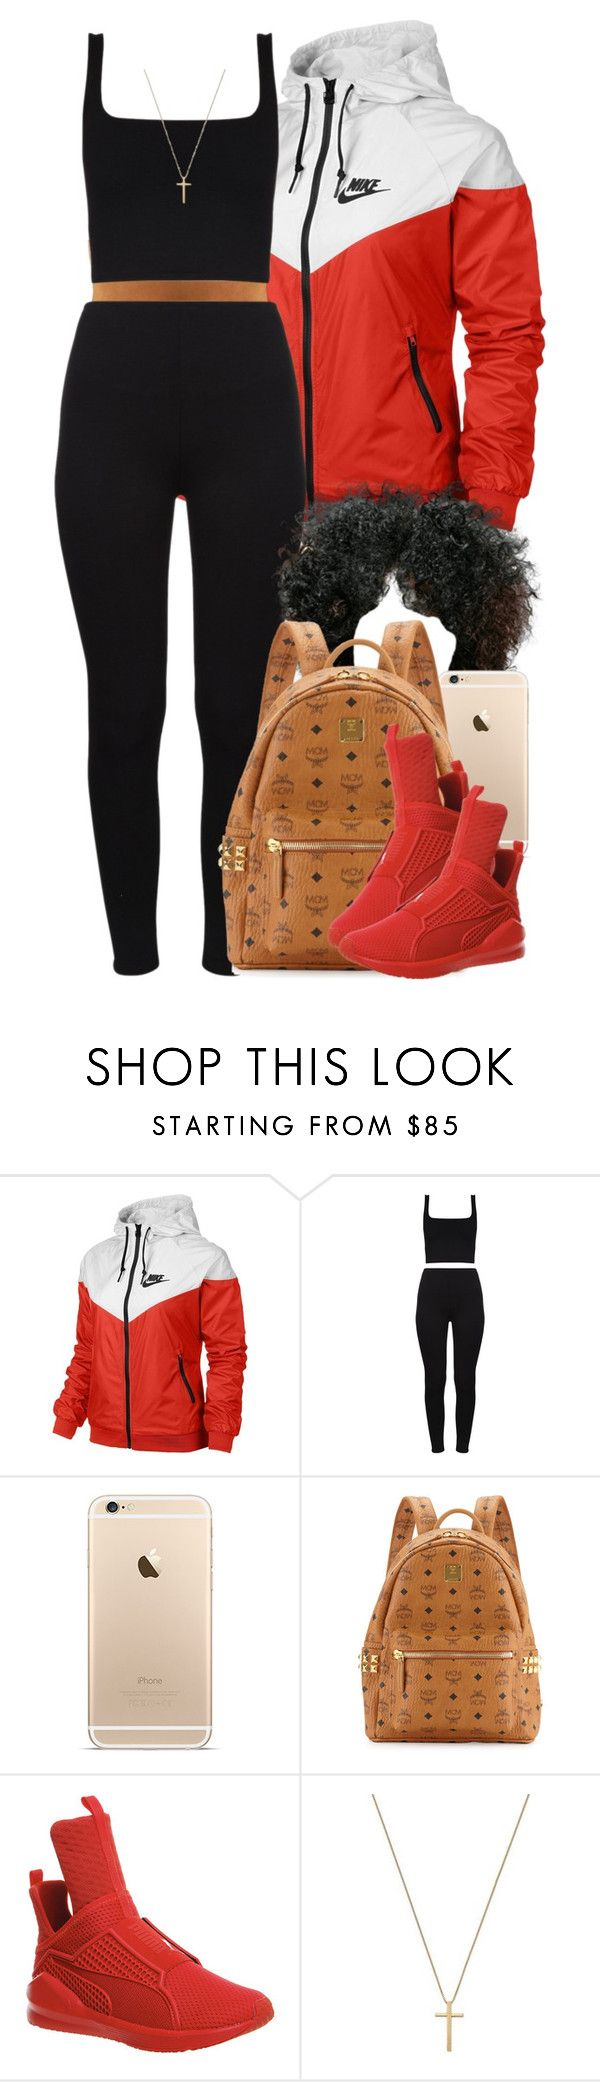 """""""When it's hot but windy. """" by livelifefreelyy ❤ liked on Polyvore featuring NIKE, MCM, Puma and Gucci"""